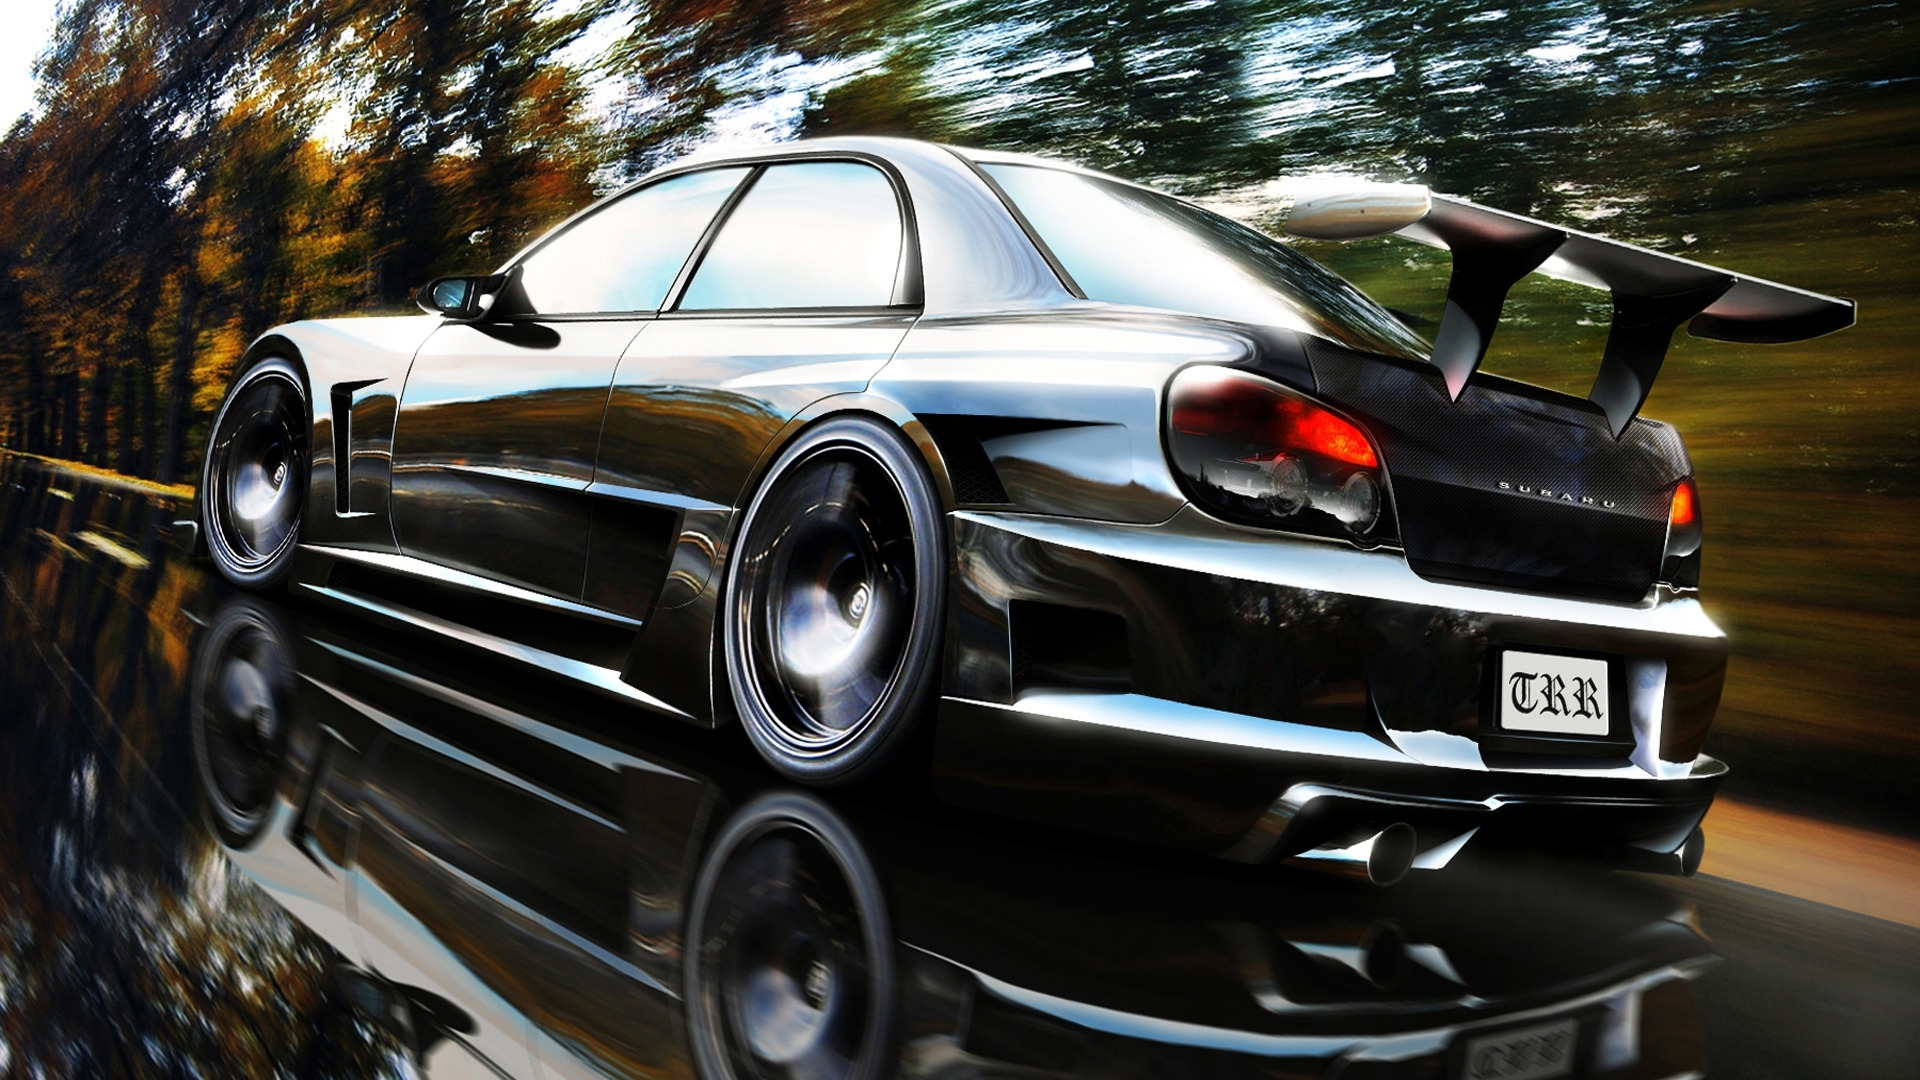 48945 download wallpaper Transport, Auto, Subaru screensavers and pictures for free